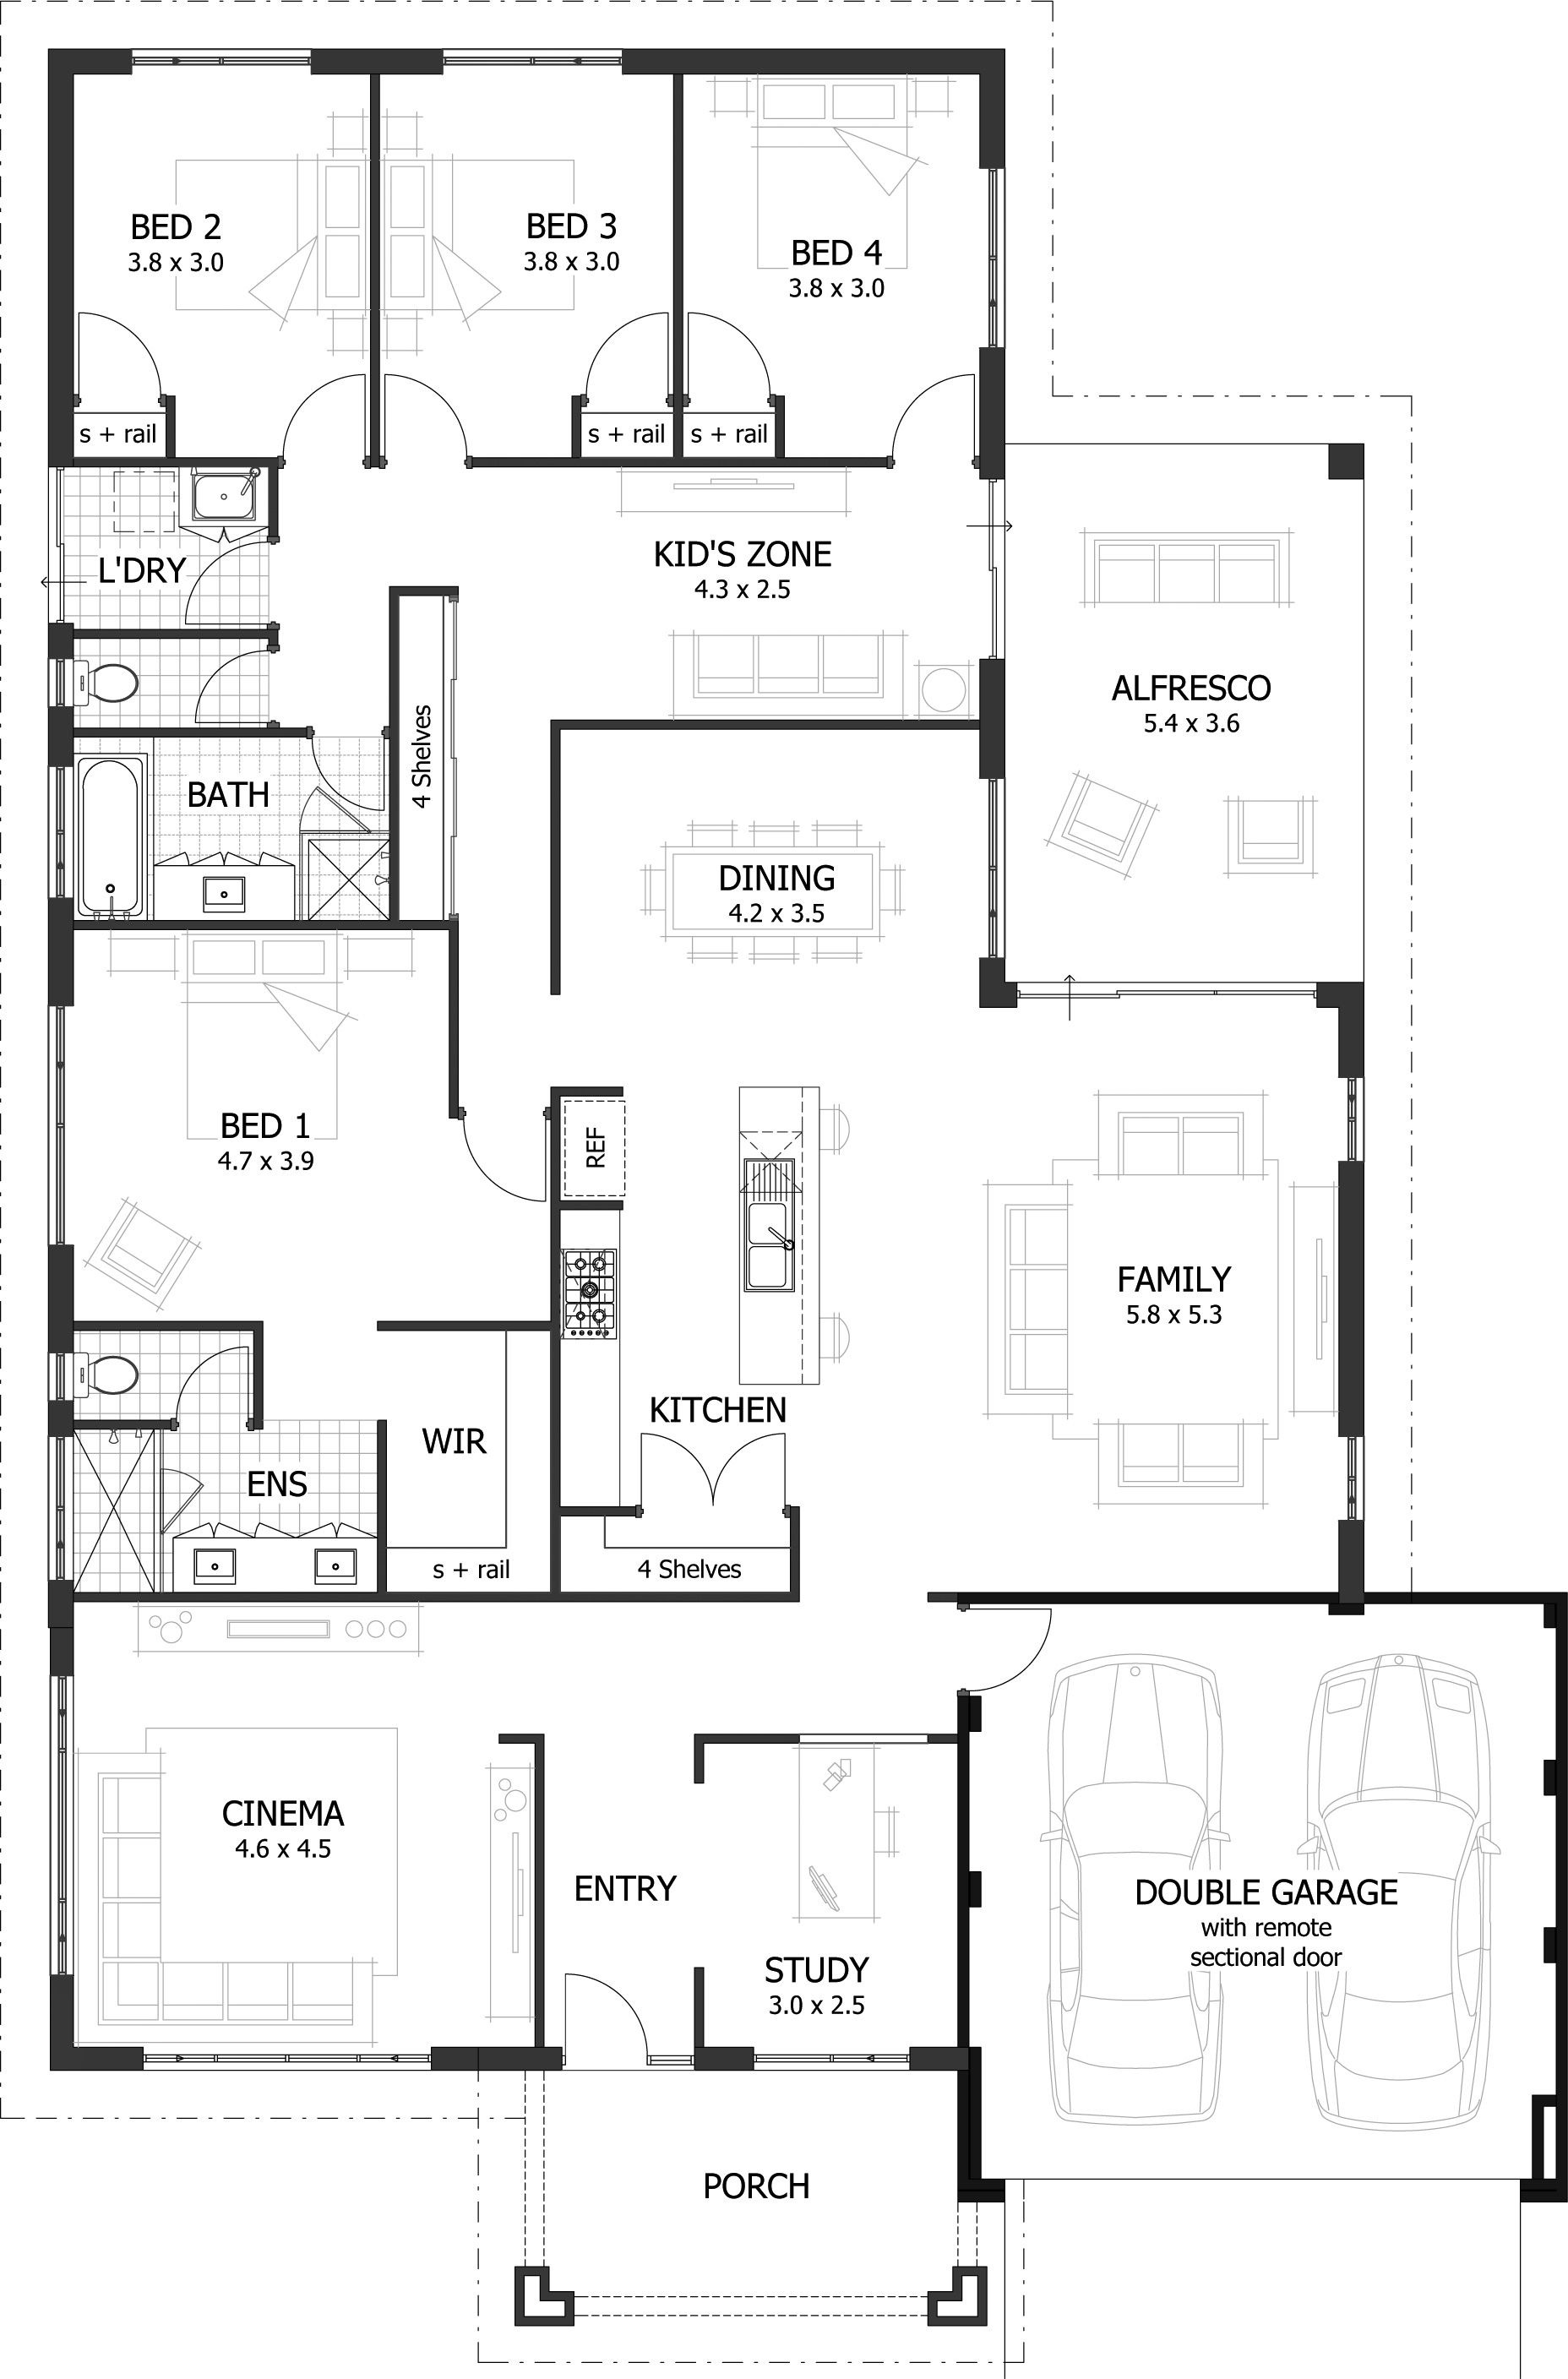 Simple Four Bedroom House Plans Best Of 4 Bedroom House Plans & Home Designs